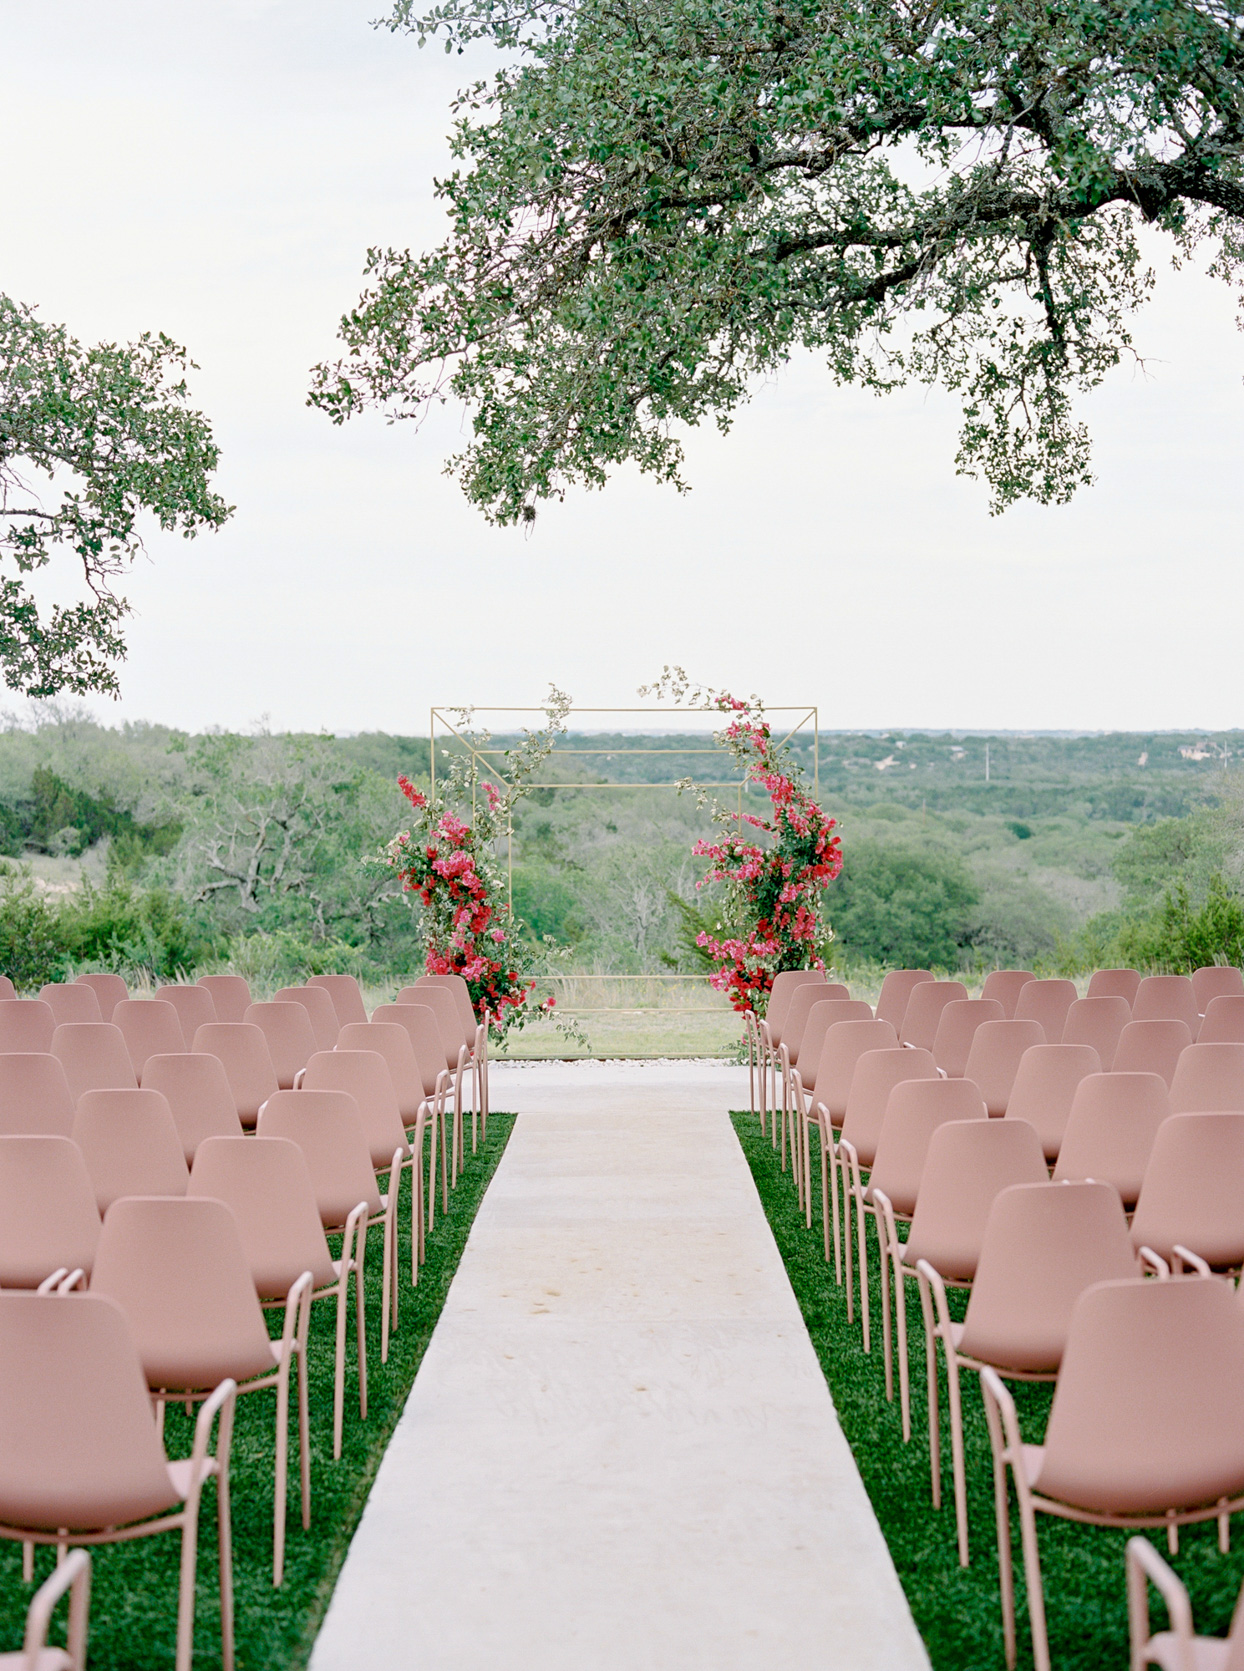 ceremony set up with blush chairs and floral archway at altar